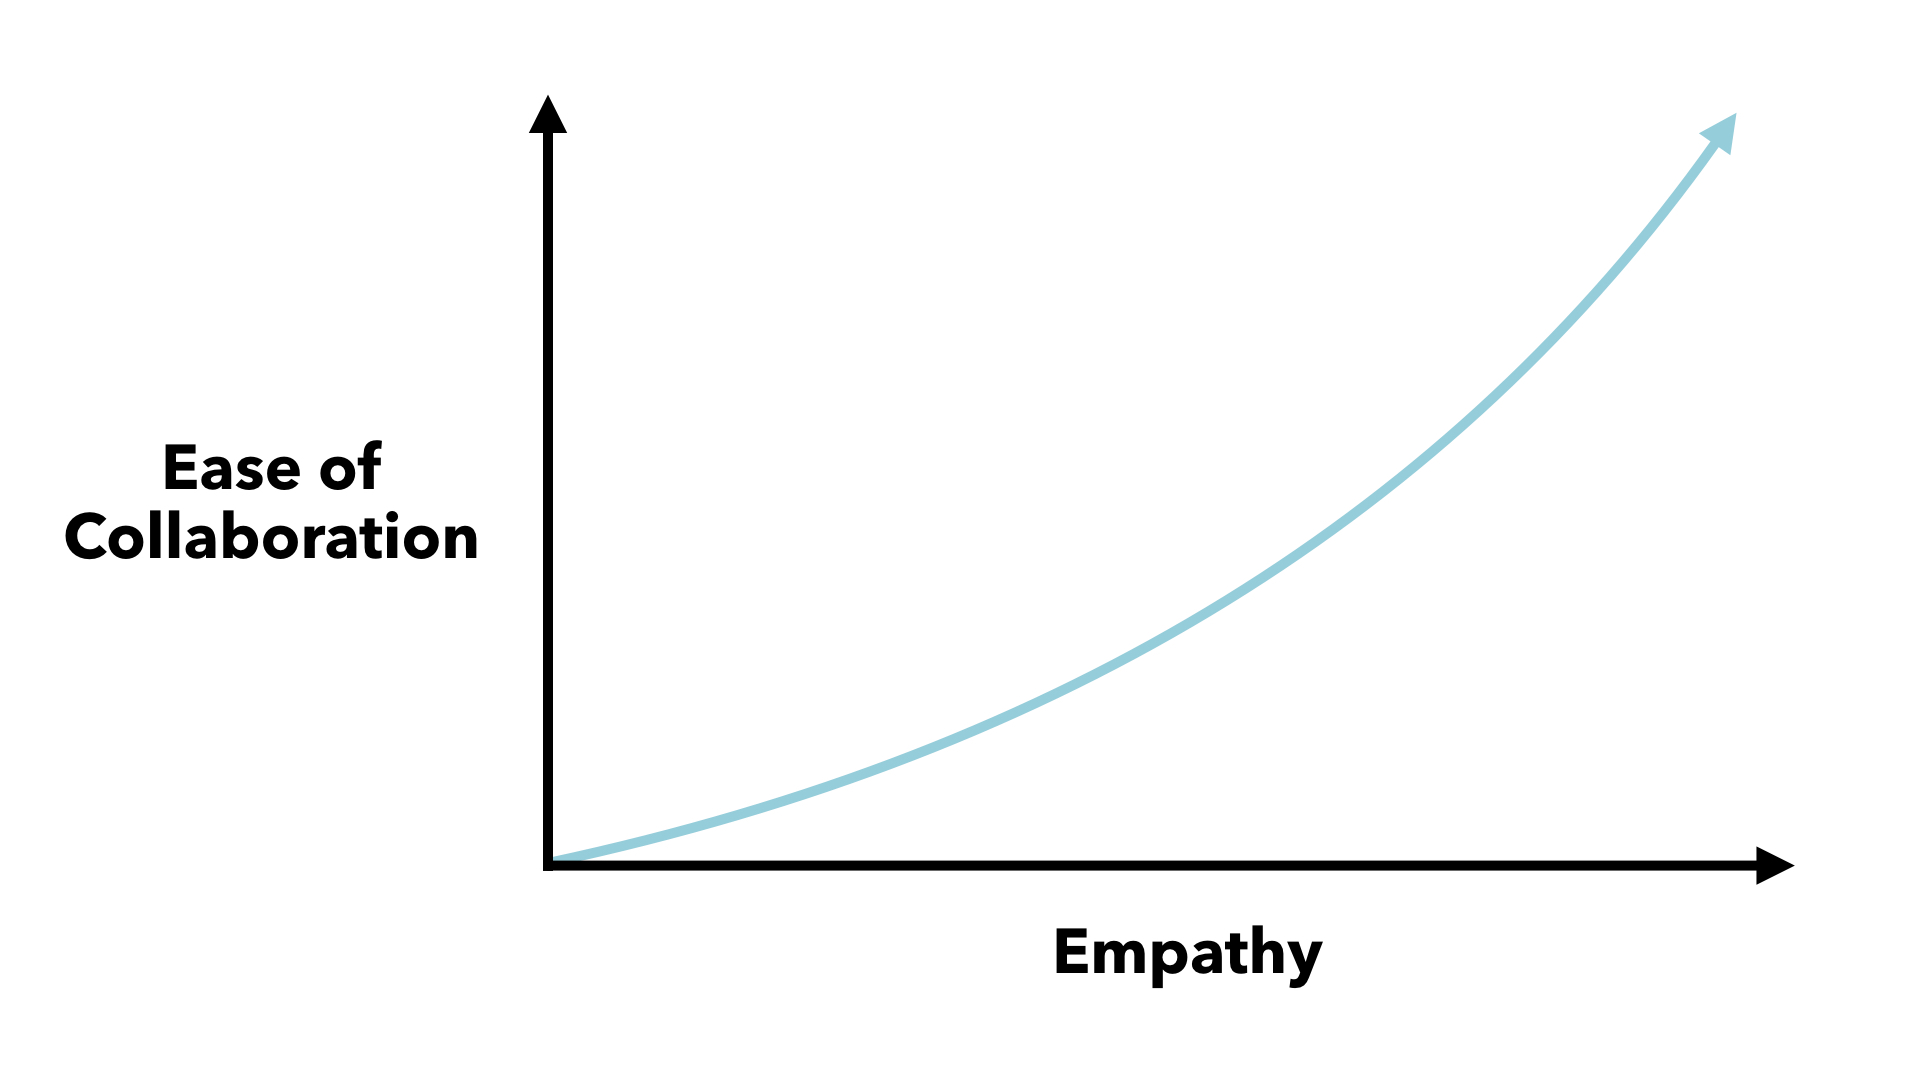 As the empathy on our teams increases, the ease of collaboration increases.